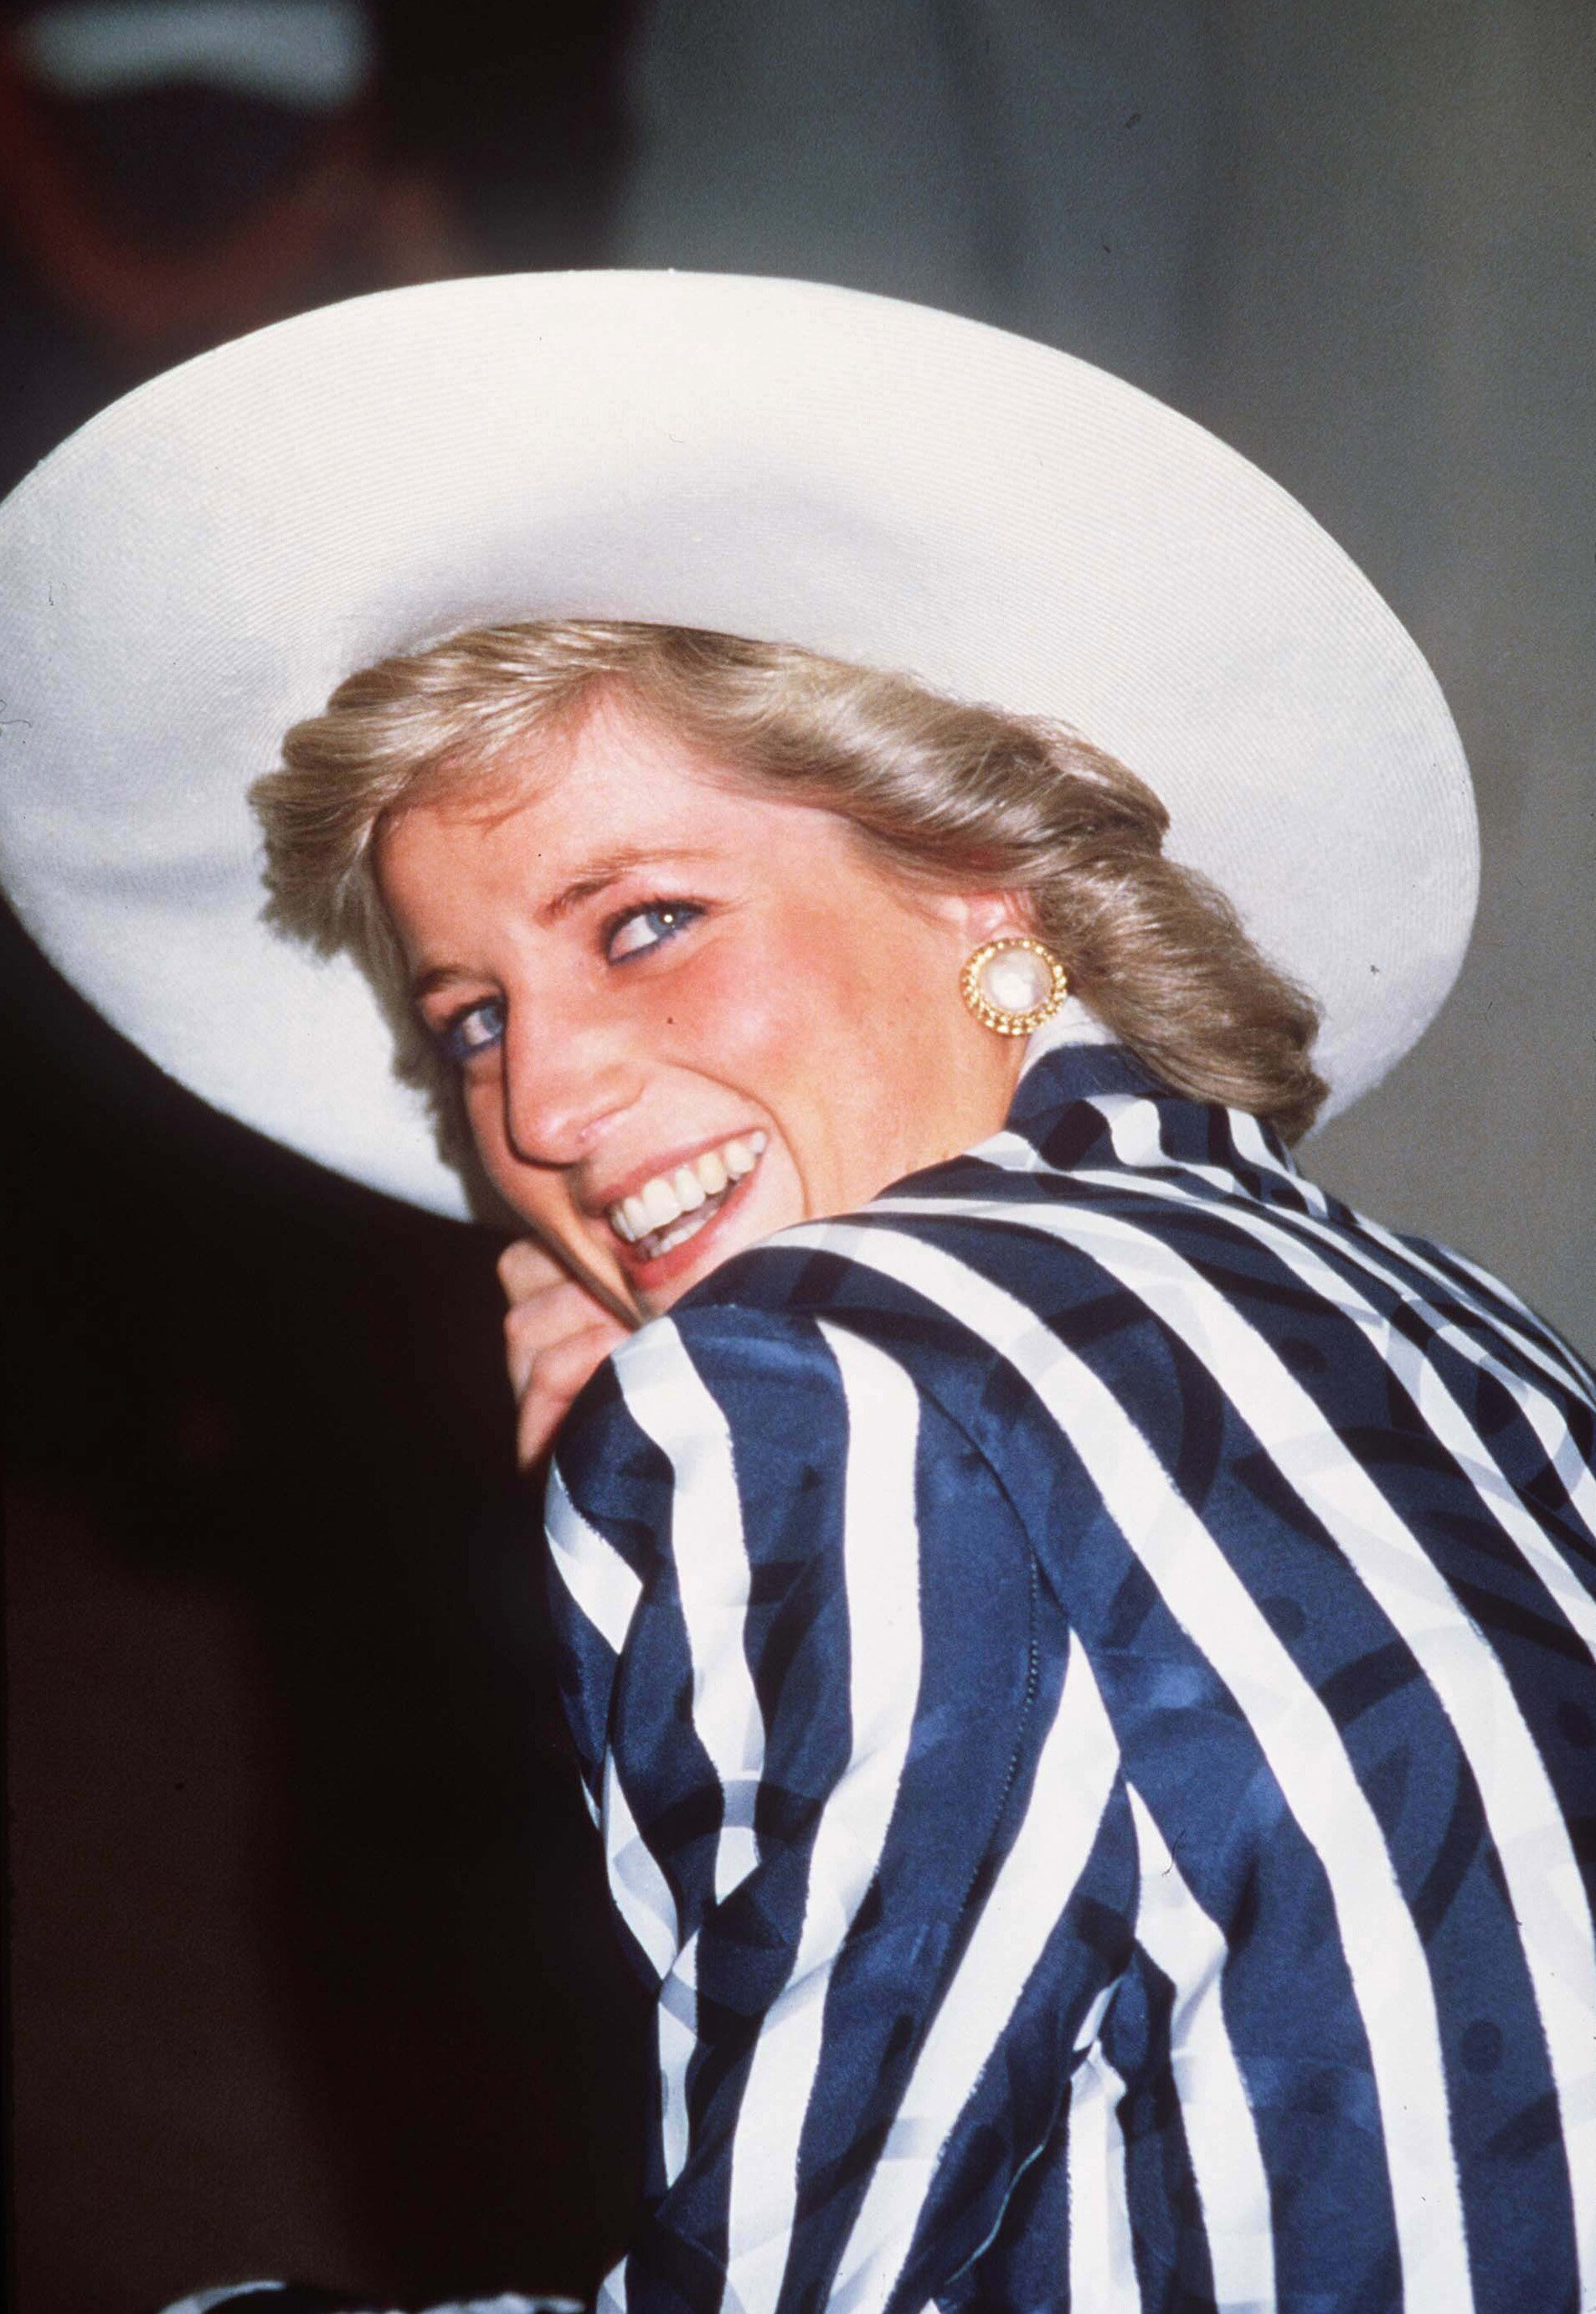 Image Credits: Getty Images | Princess Diana Smiling For The Camera